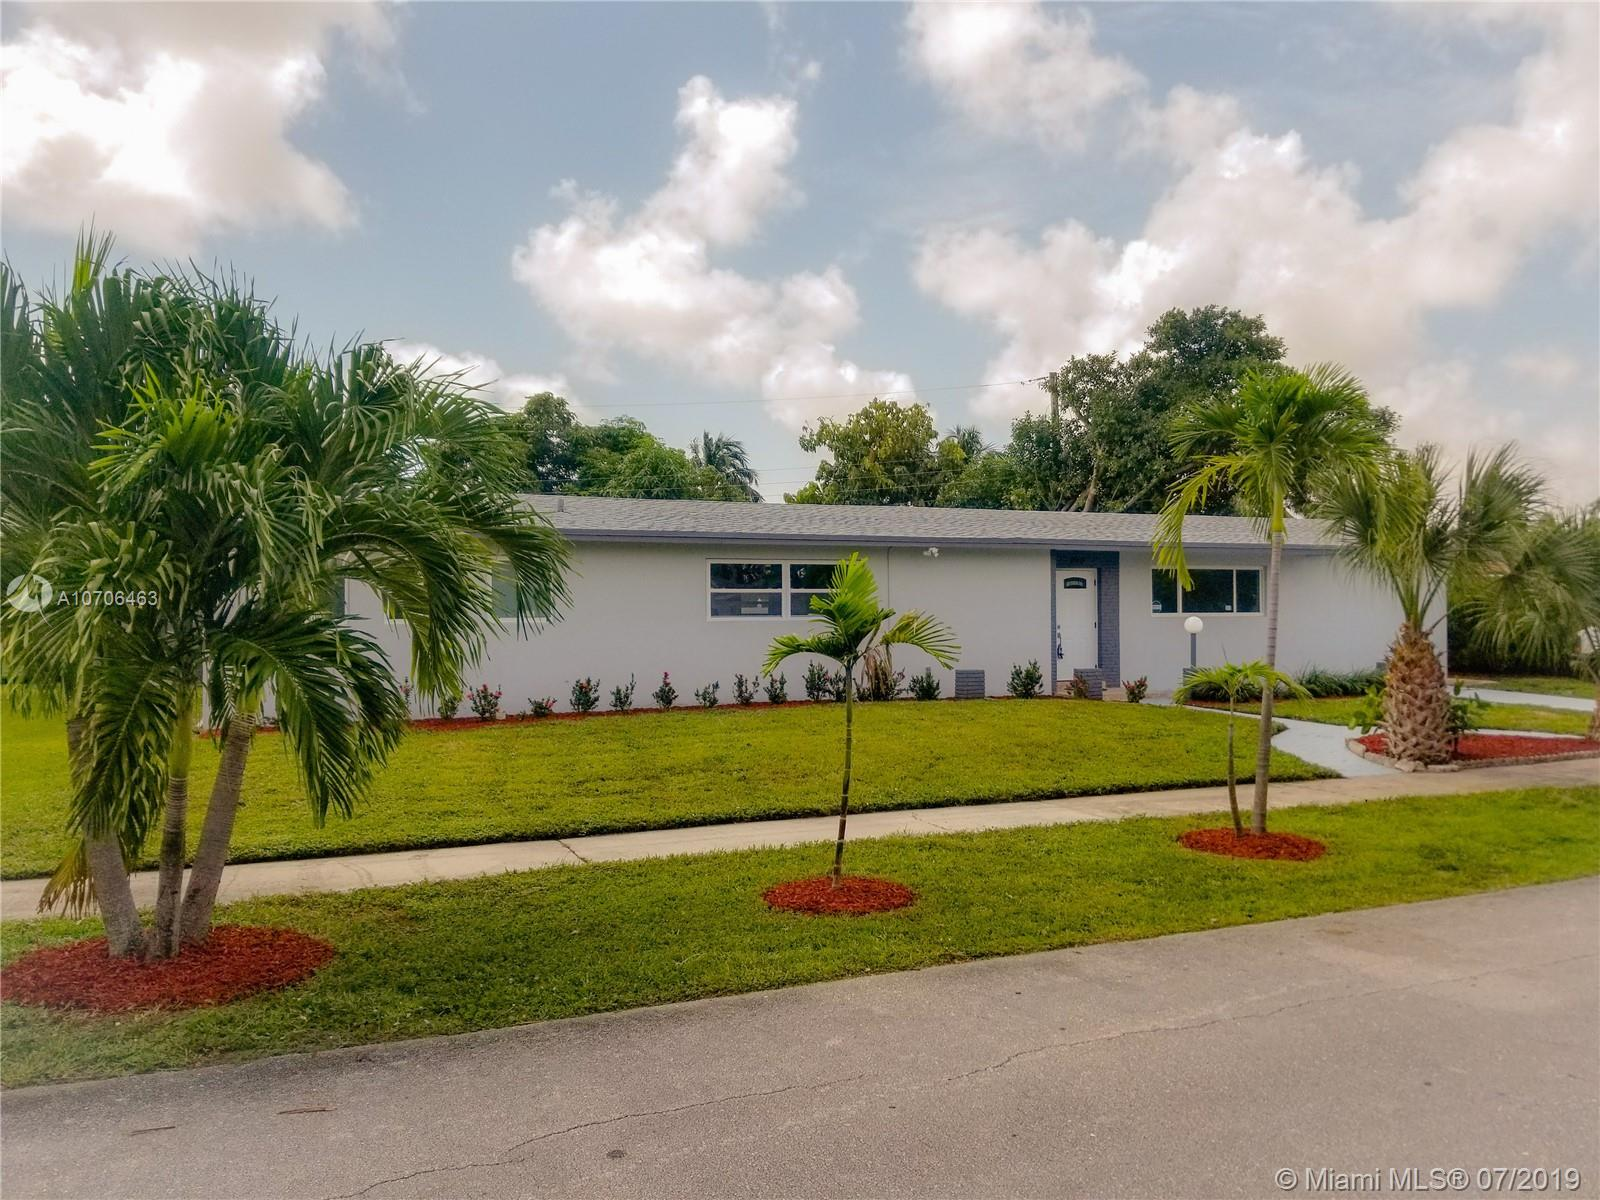 530 NE 179th Dr, Miami Shores, Florida